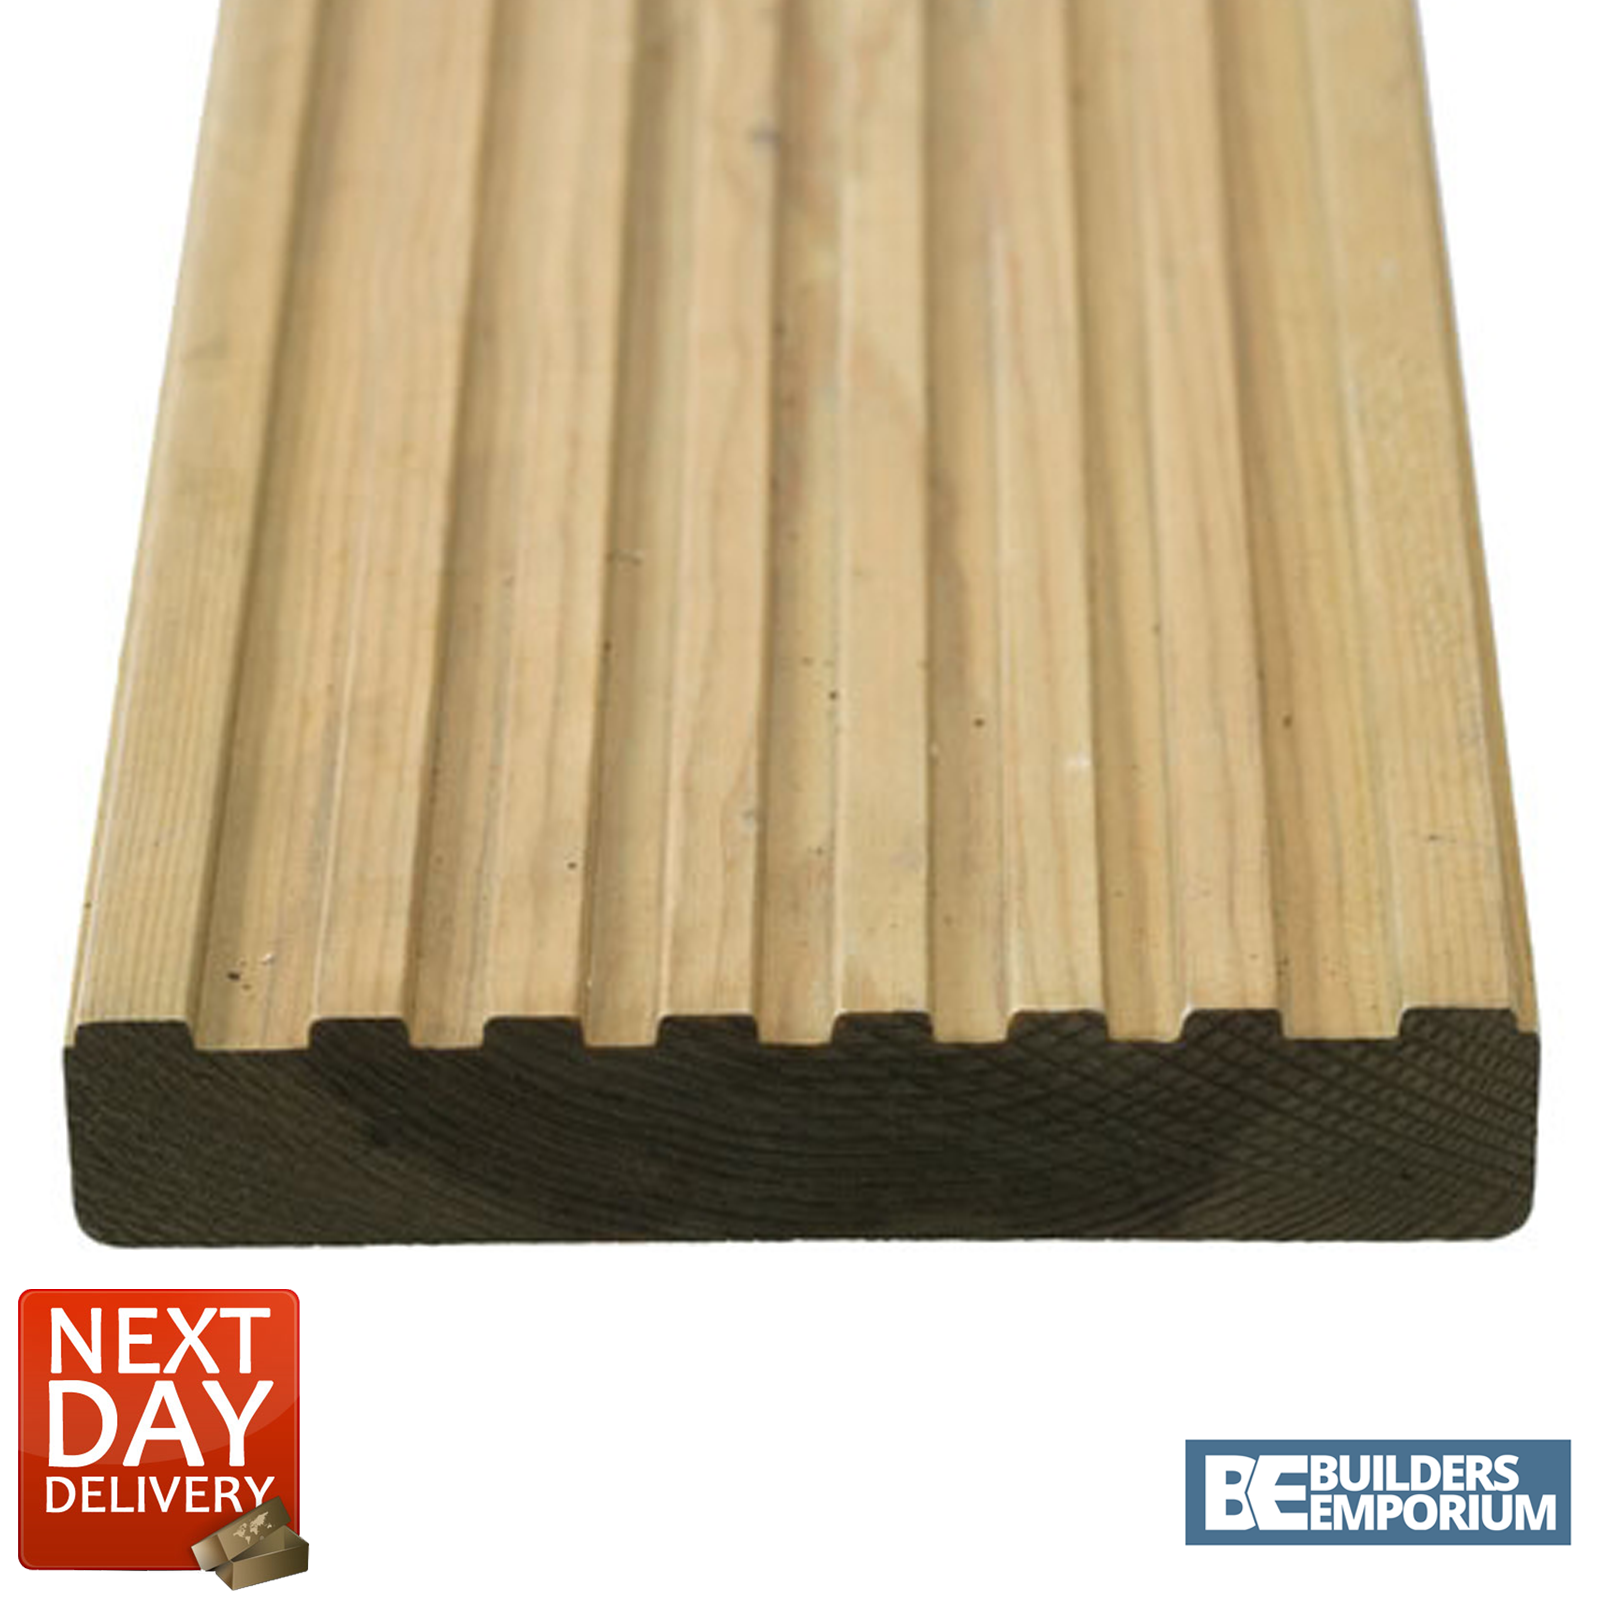 Treated timber decking boards 26x145mm 3 6m long finished for 6 metre decking boards